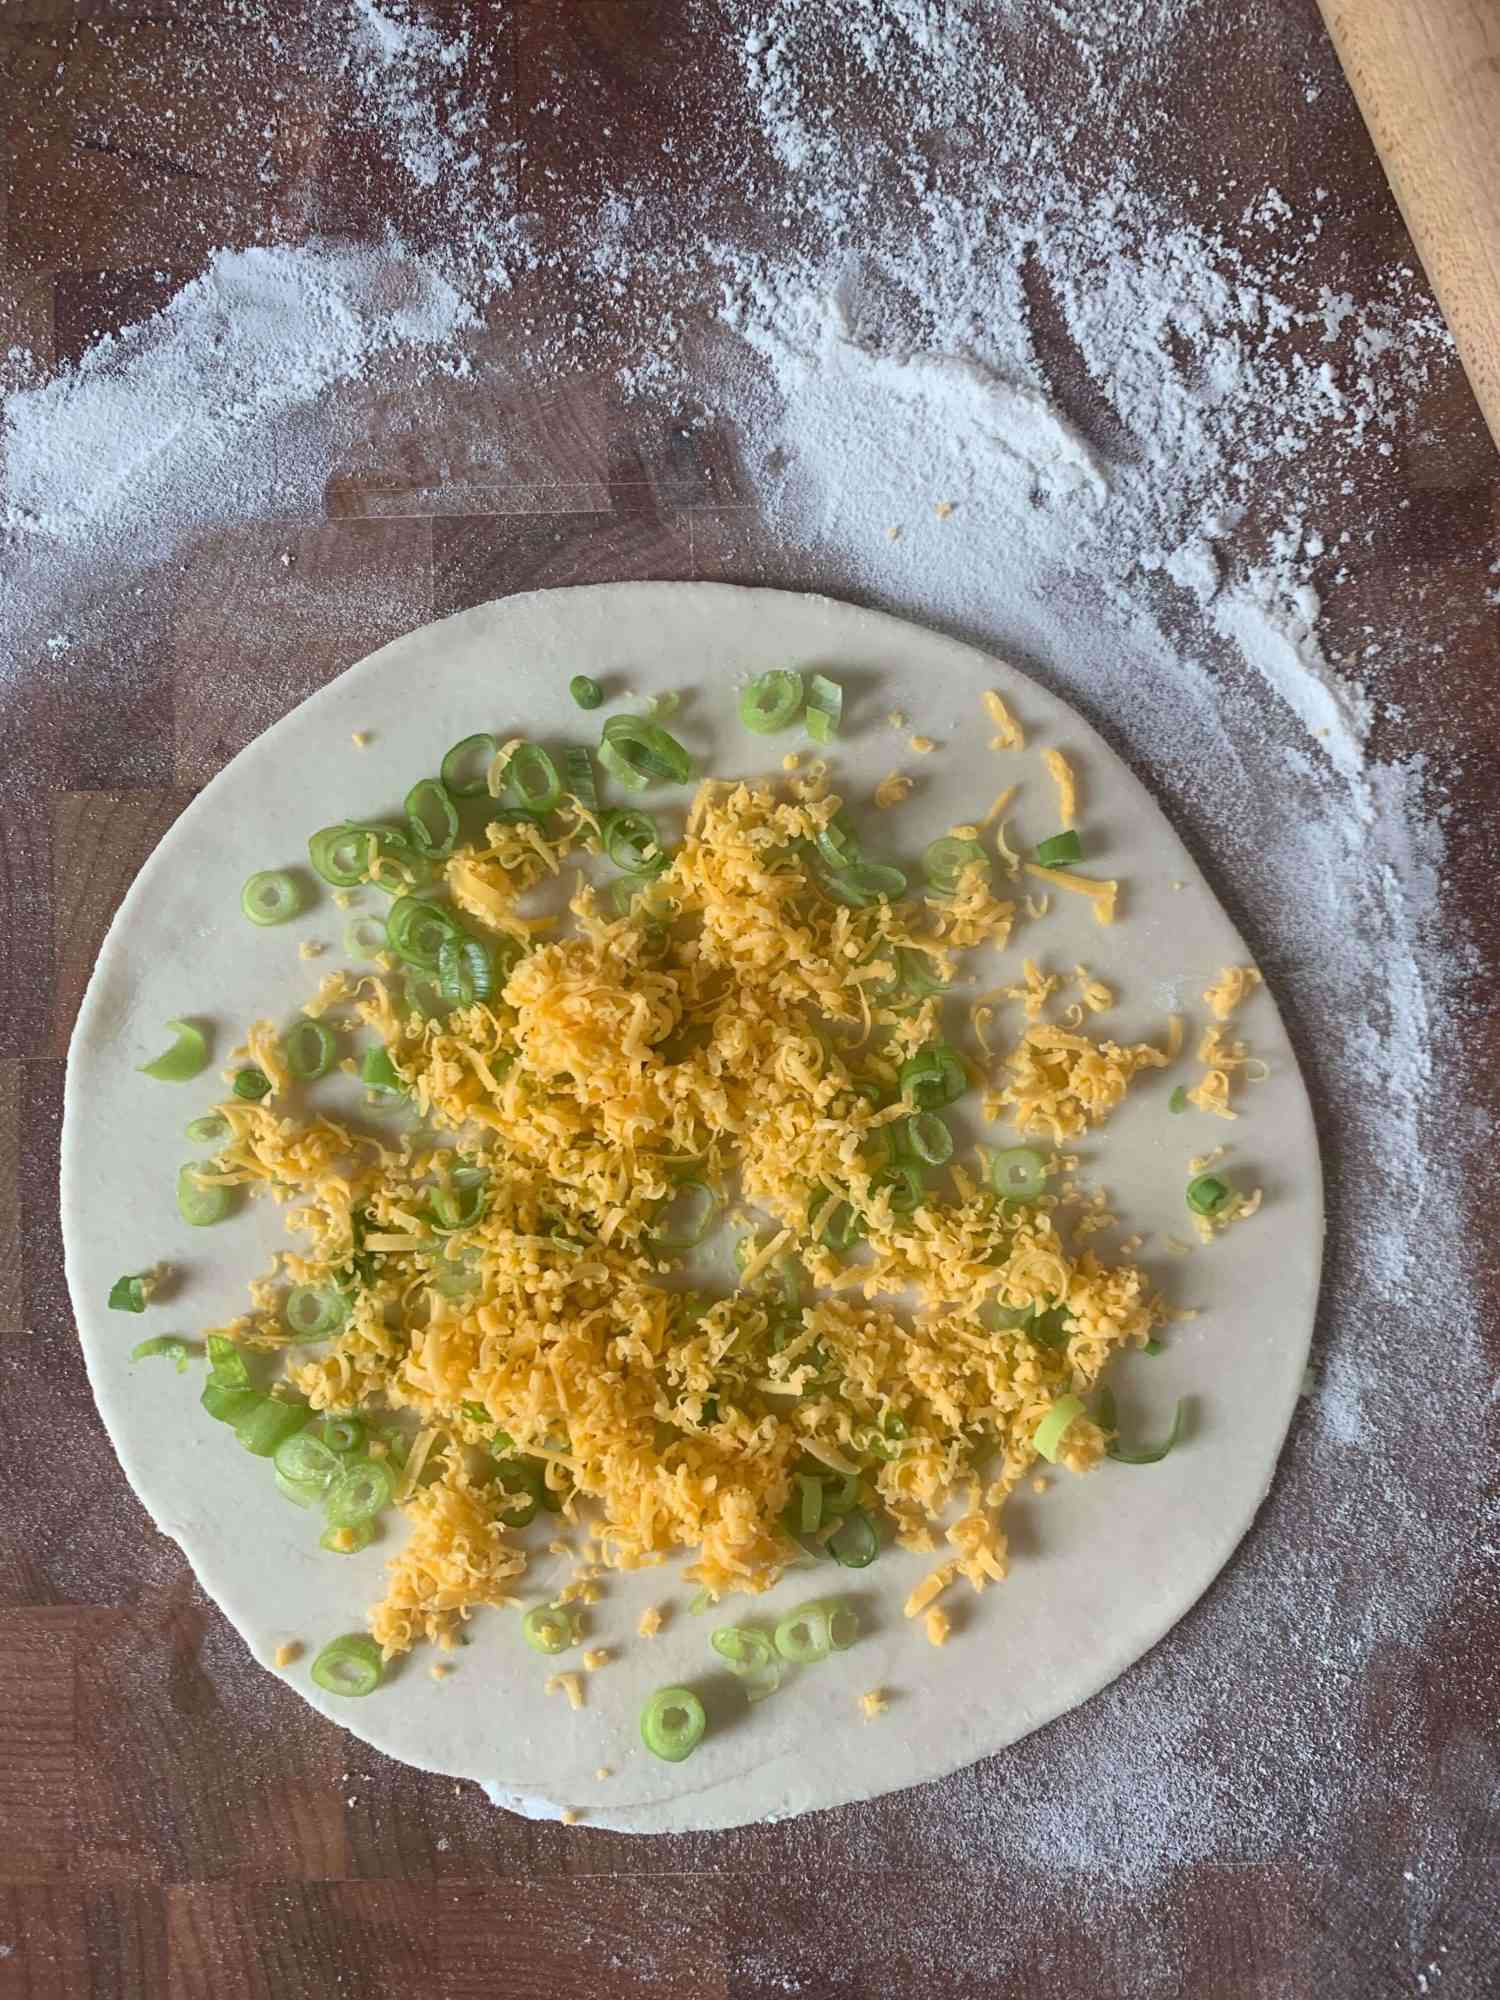 scallion pancake dough with scallions and cheese sprinkled over it